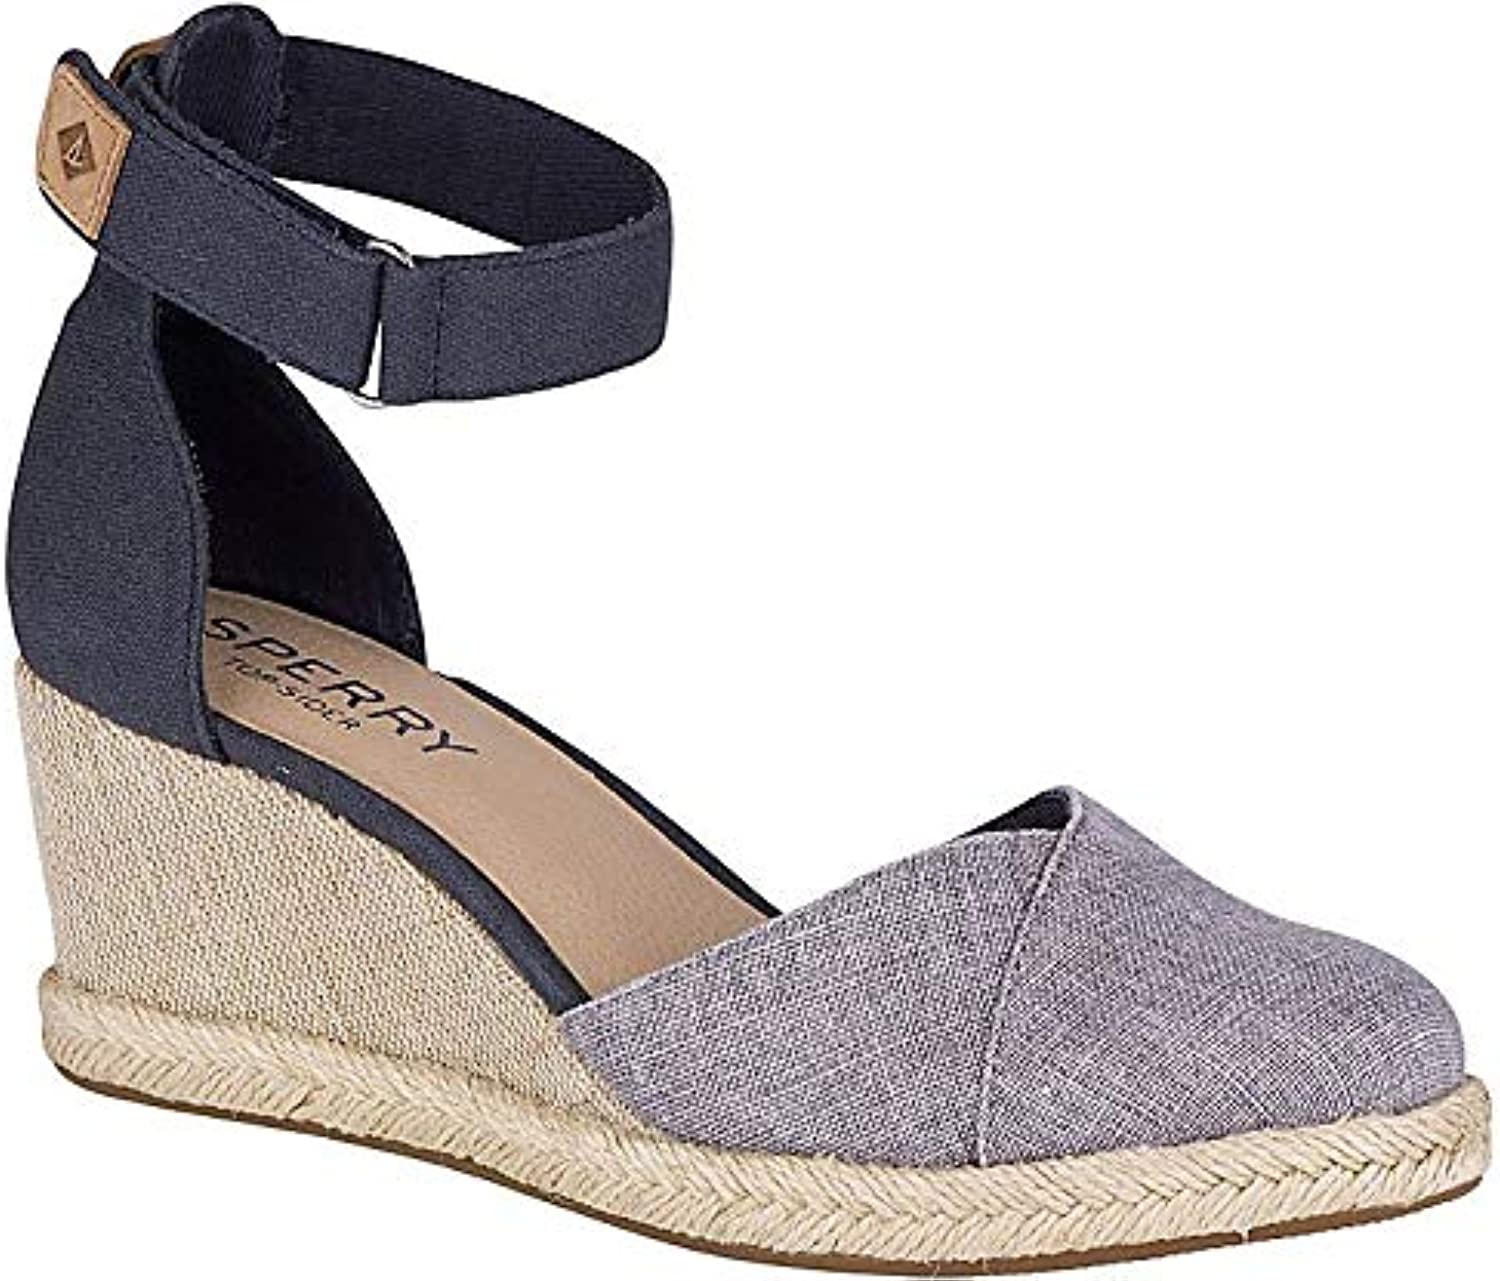 Sperry Women's Valencia Canvas gold Espadrille Wedge